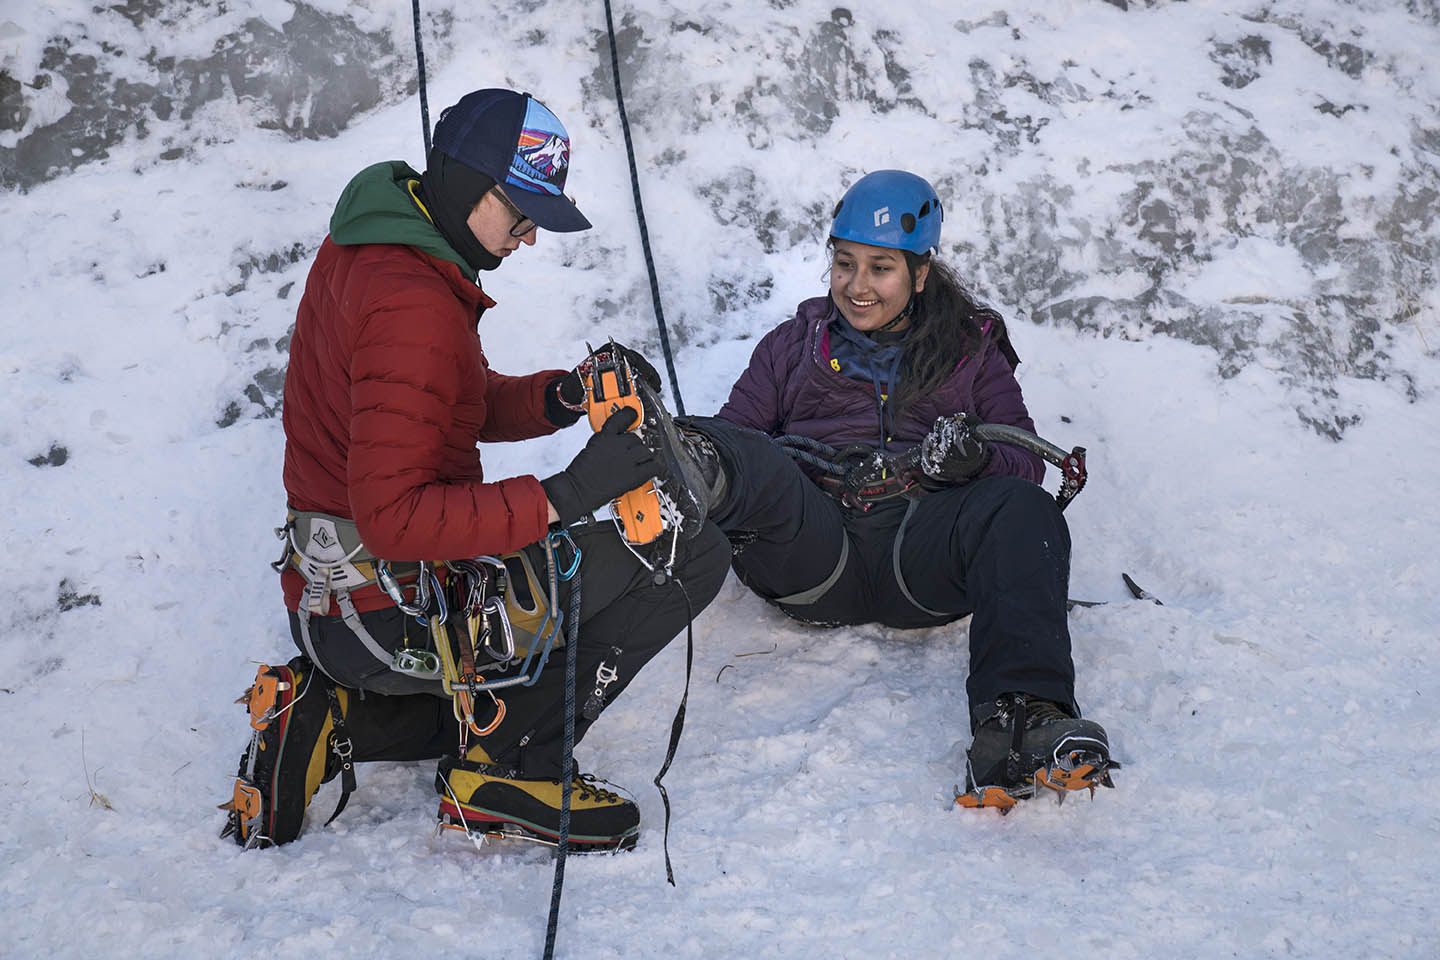 Climbing guide Dillon Diering, 22, left, helps Nirshika Neopany, 14, right, prepare for an ice climb at Camp Alexander at Lake George, Colo. on Feb. 17, 2017. The camp is run by the Boy Scouts of America.